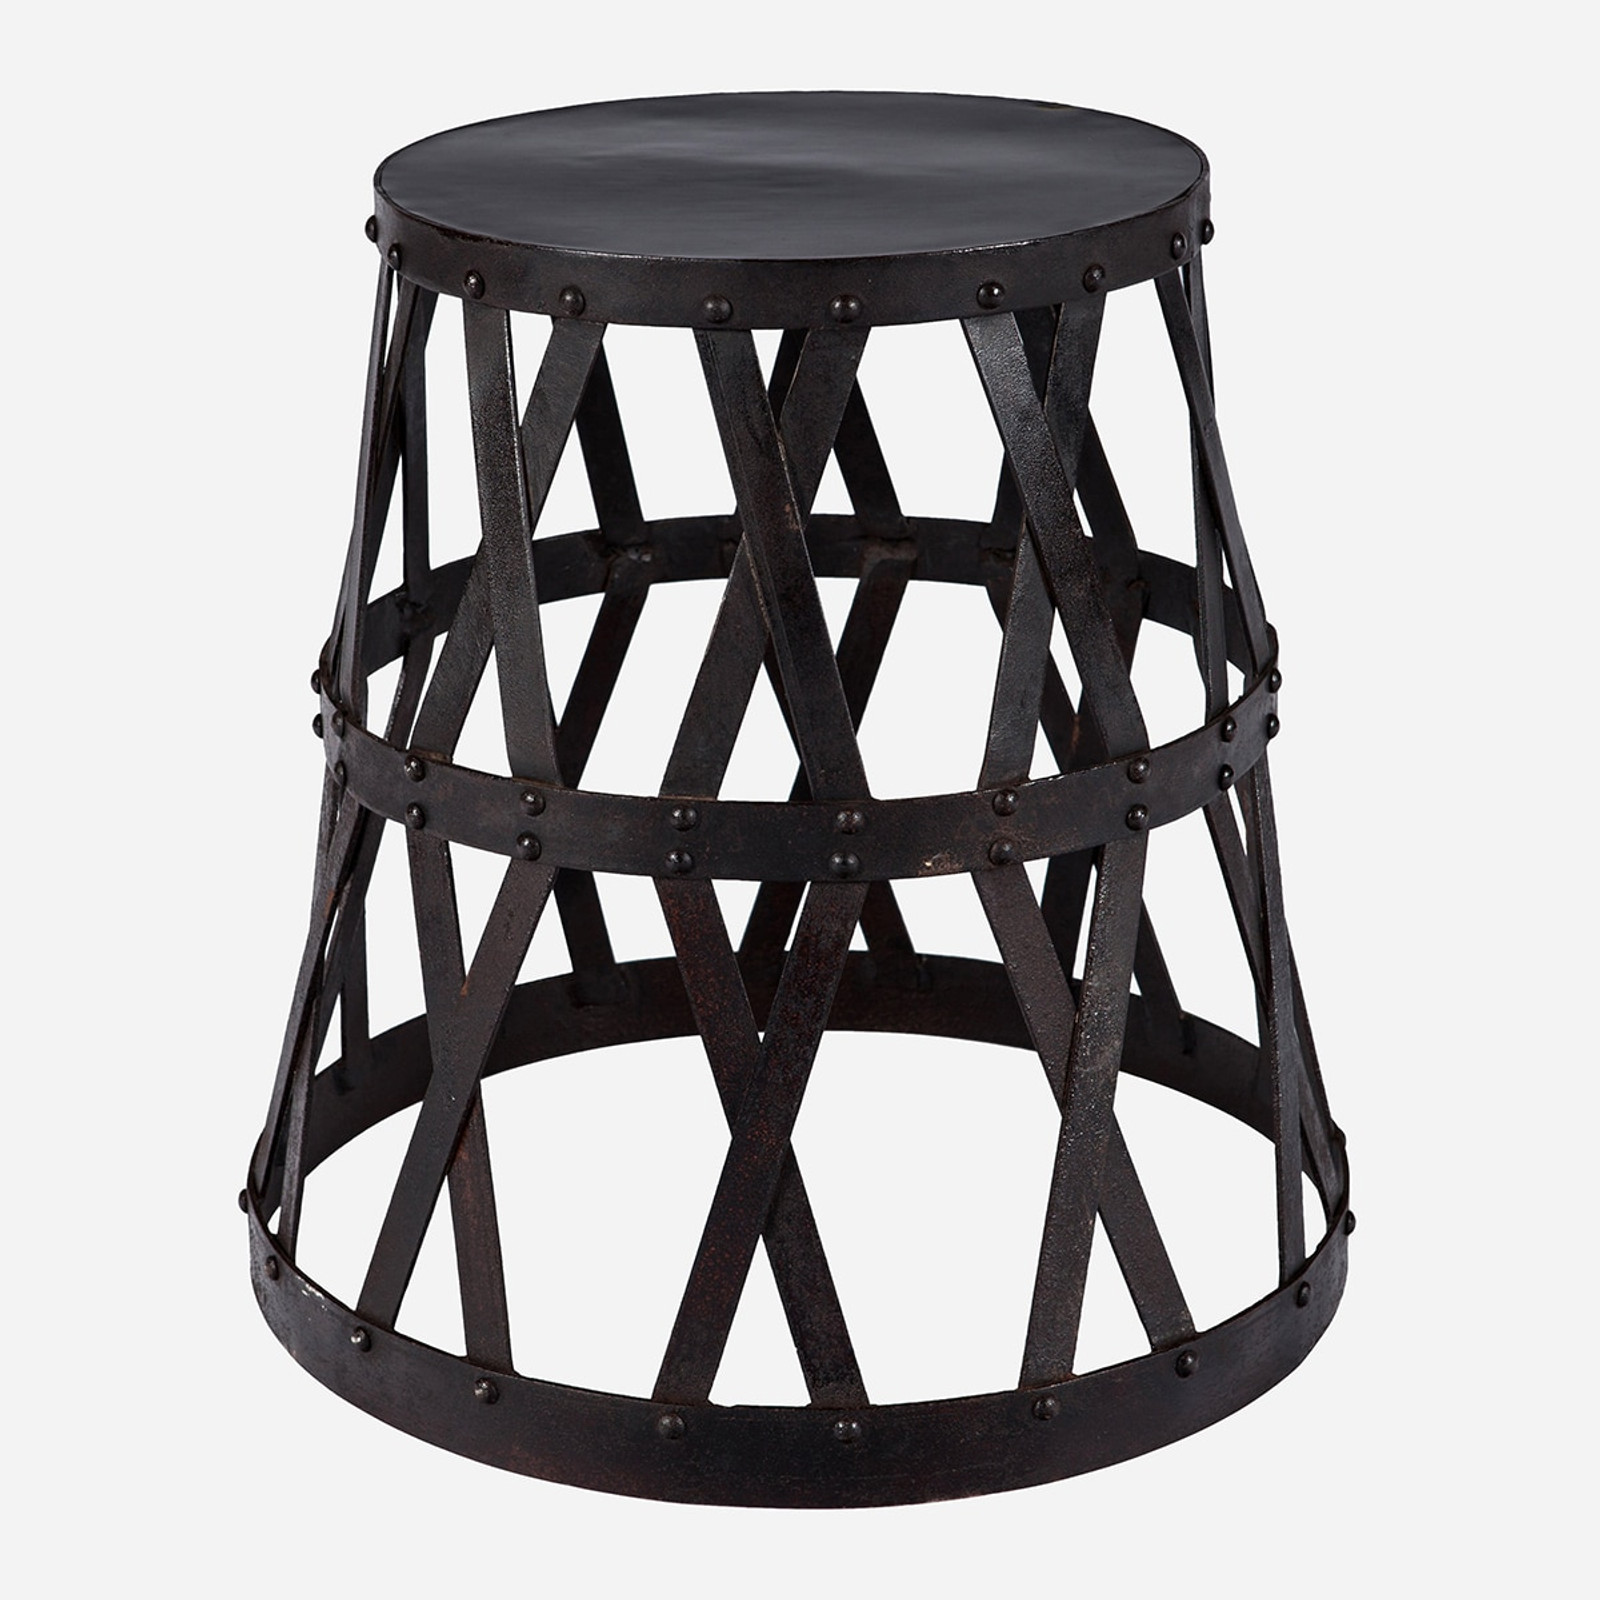 Side Show Table or Stool